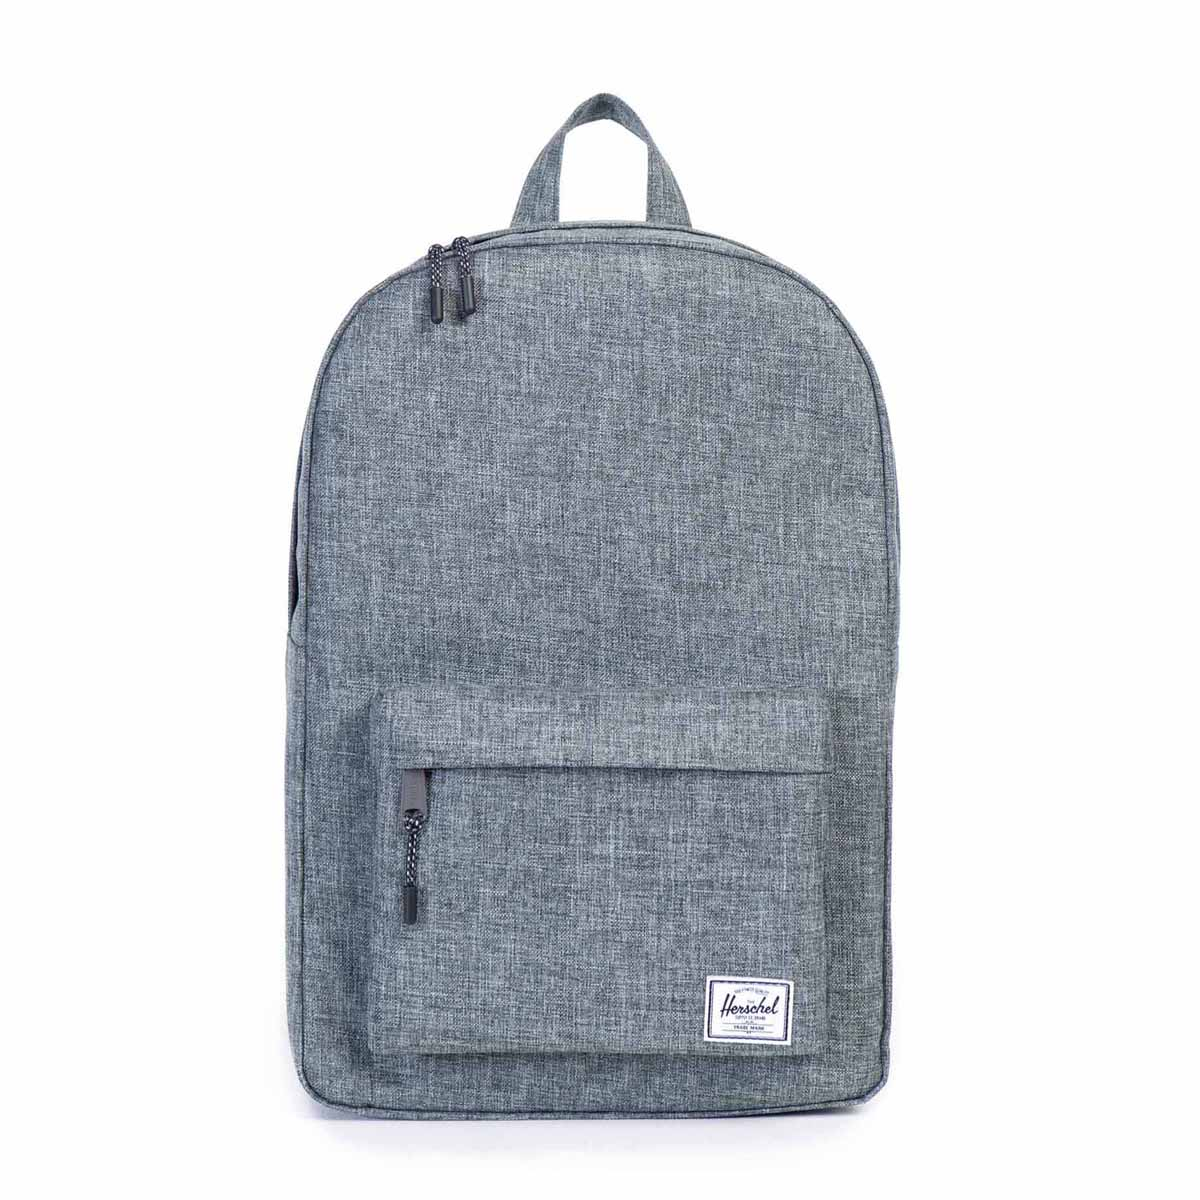 8a7dfc9e7e Canada is now most up-and-coming bag brand HERSCHEL by from Vancouver. The  finish which is outstandingly stylish D Tyr who included urbane